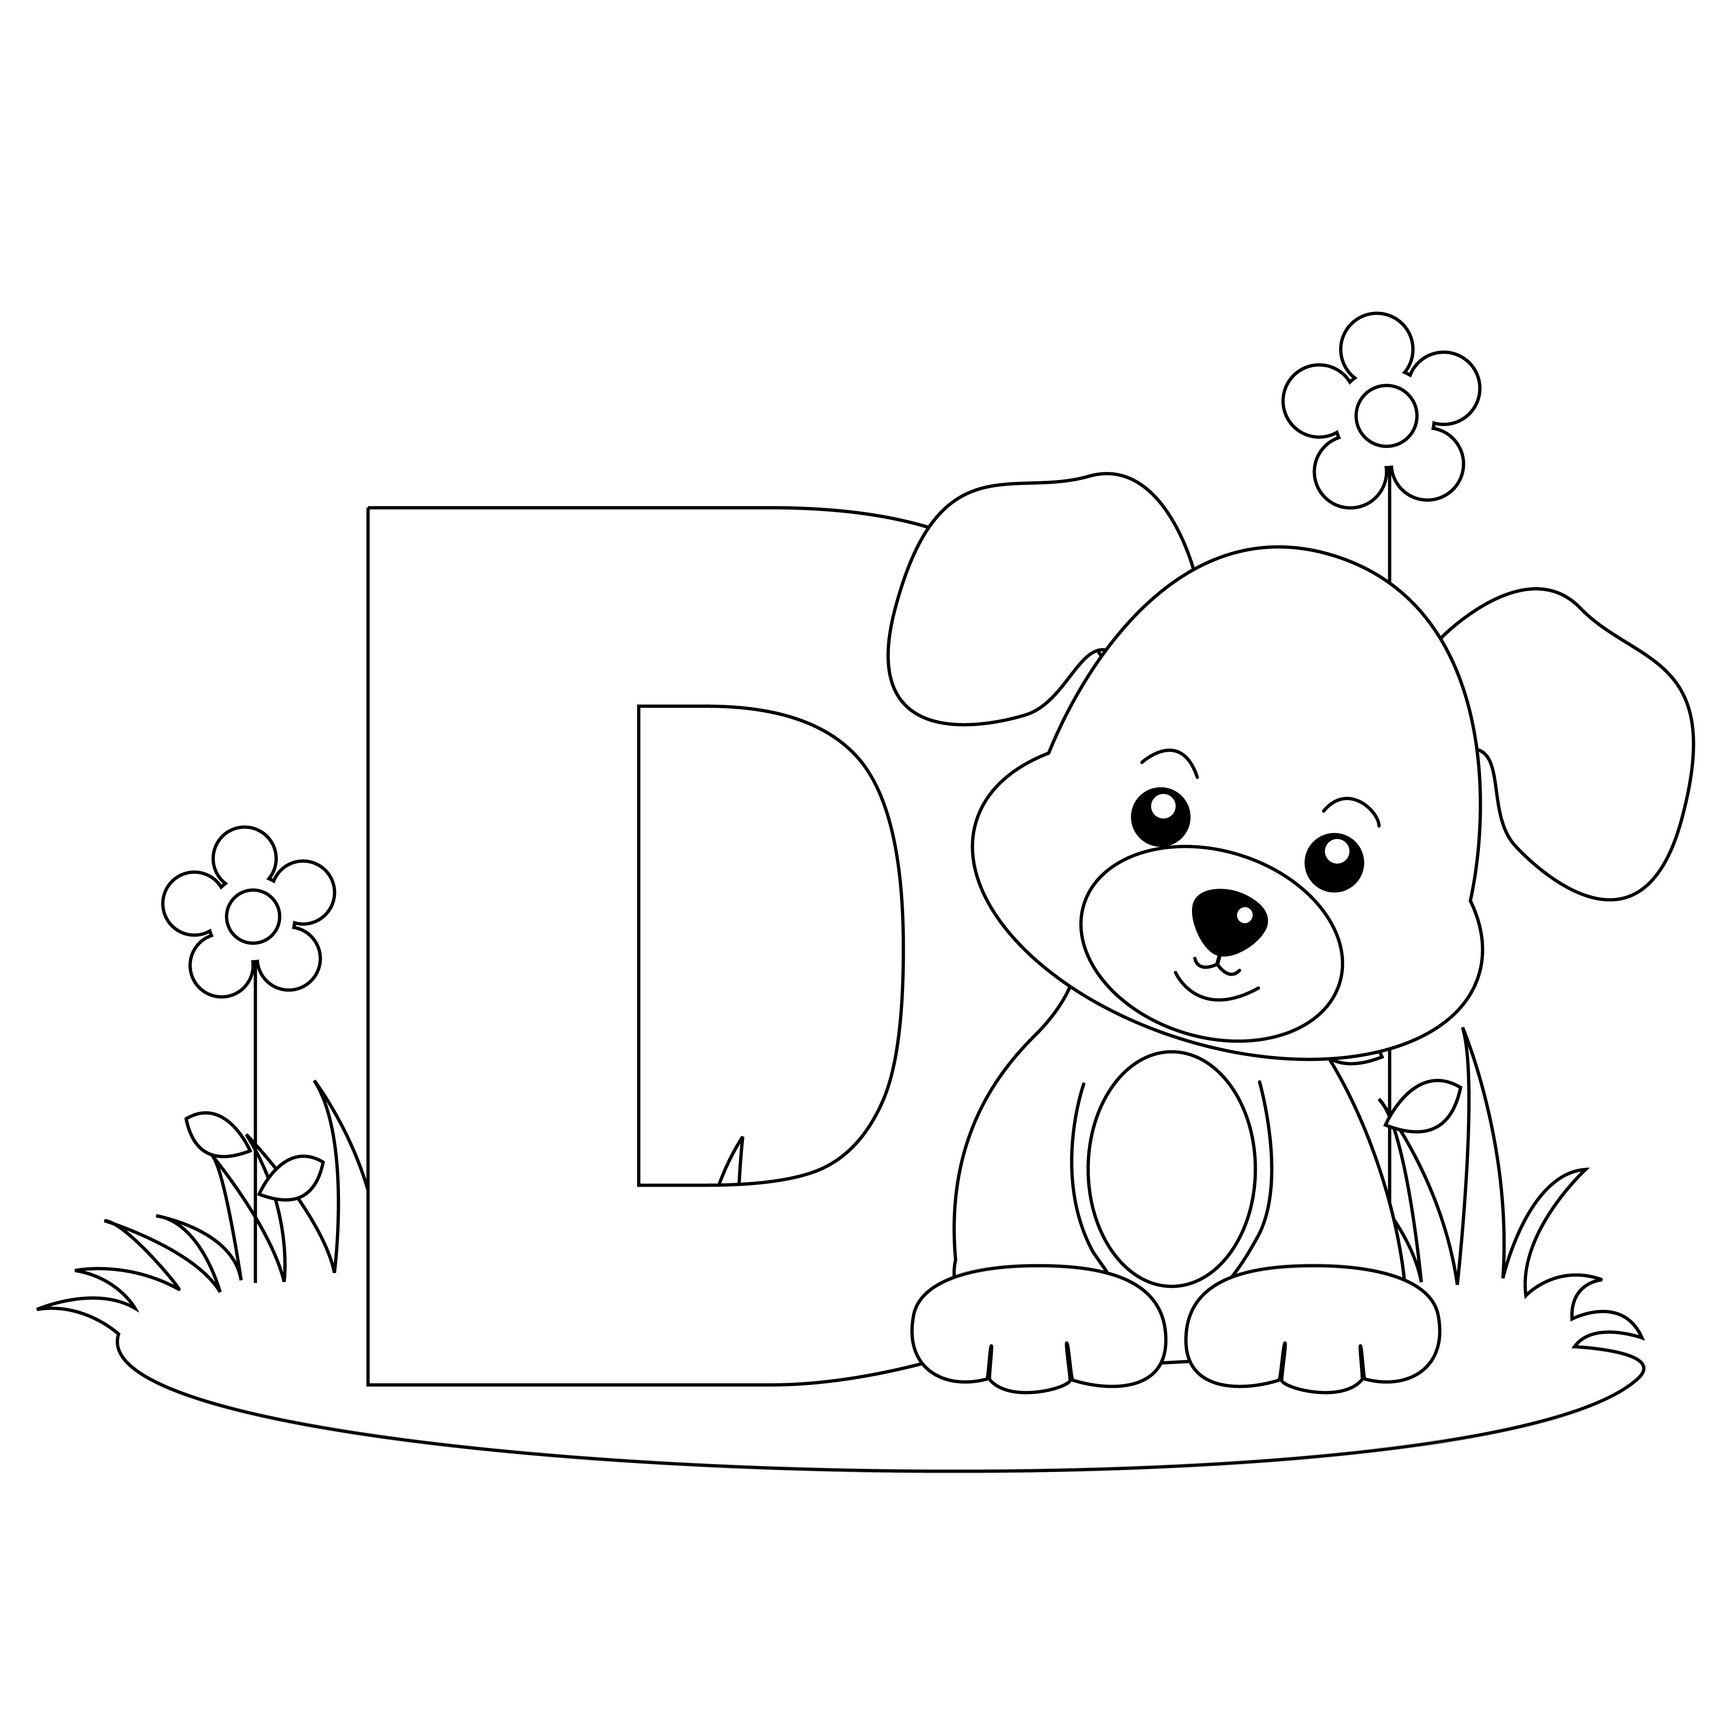 Animal Alphabet Letter D Is For Dog! Here's A Simple | Alphabet - Free Printable Animal Alphabet Letters